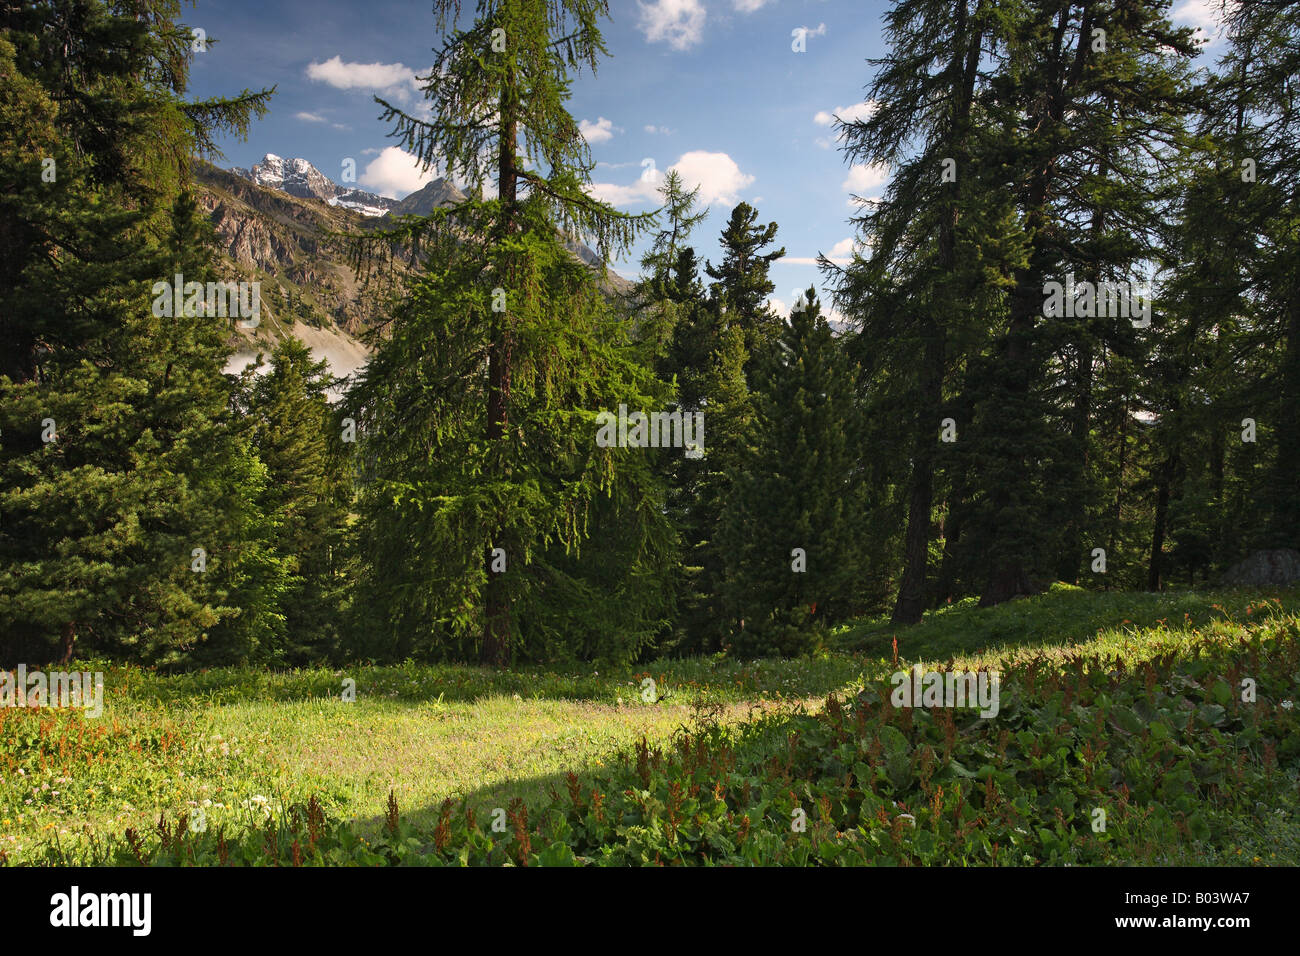 countryside landschaft landscape scenery alps allpen engadin graubuenden grisons canton switzerland schweiz europe - Stock Image